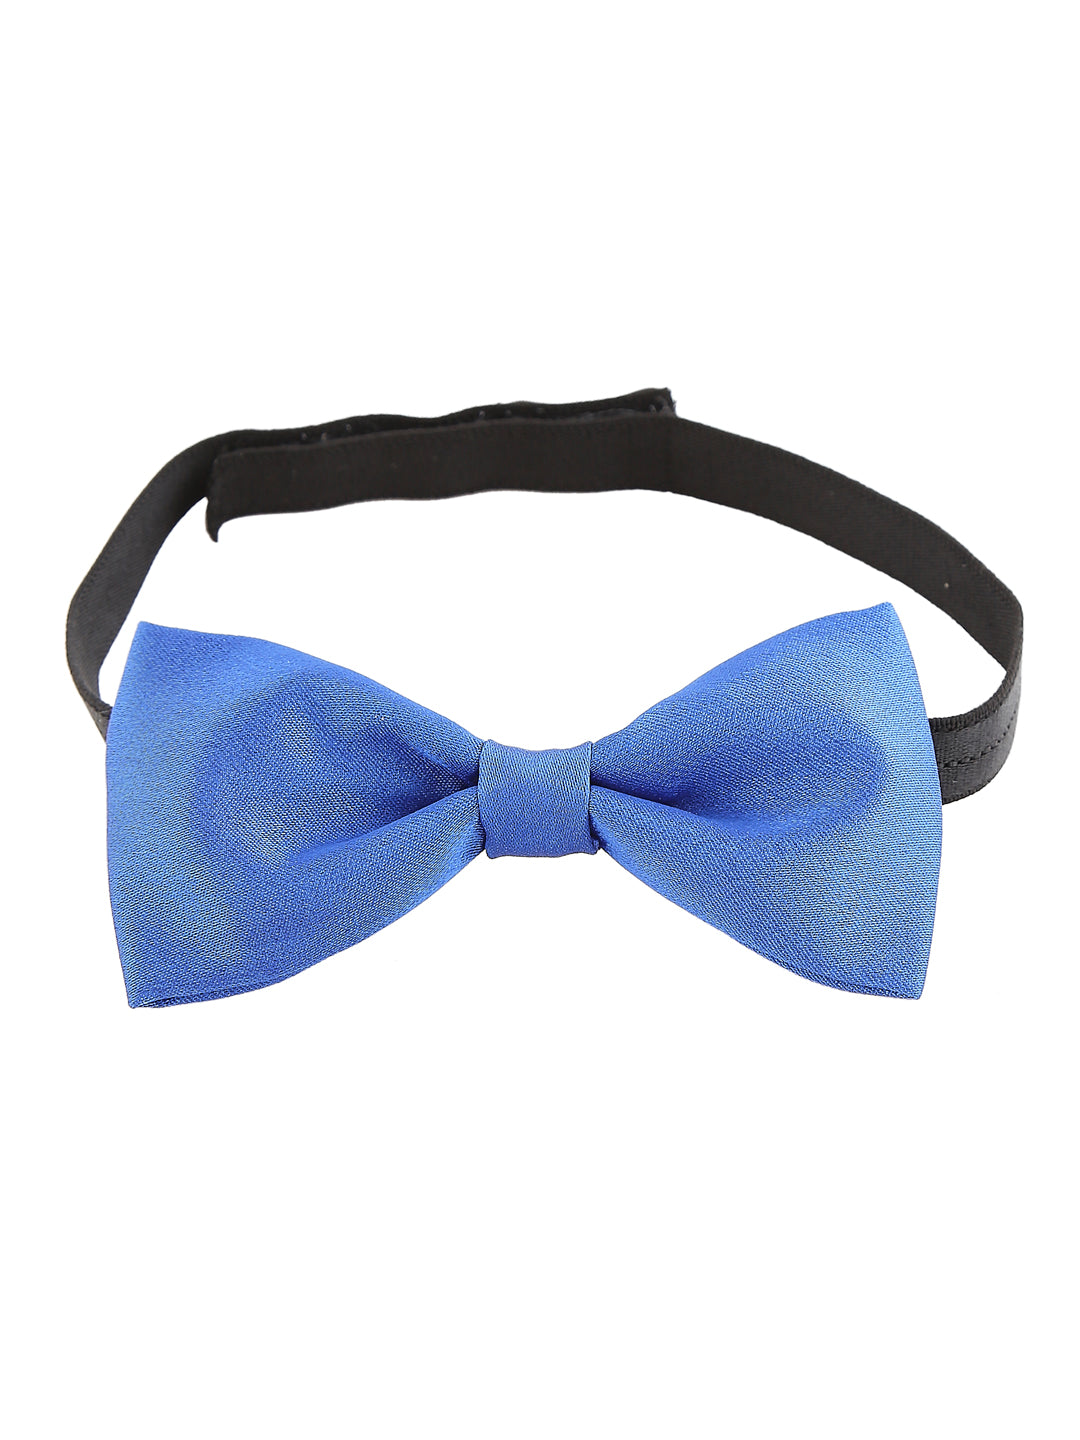 Zido Bow Tie for Men BPL071